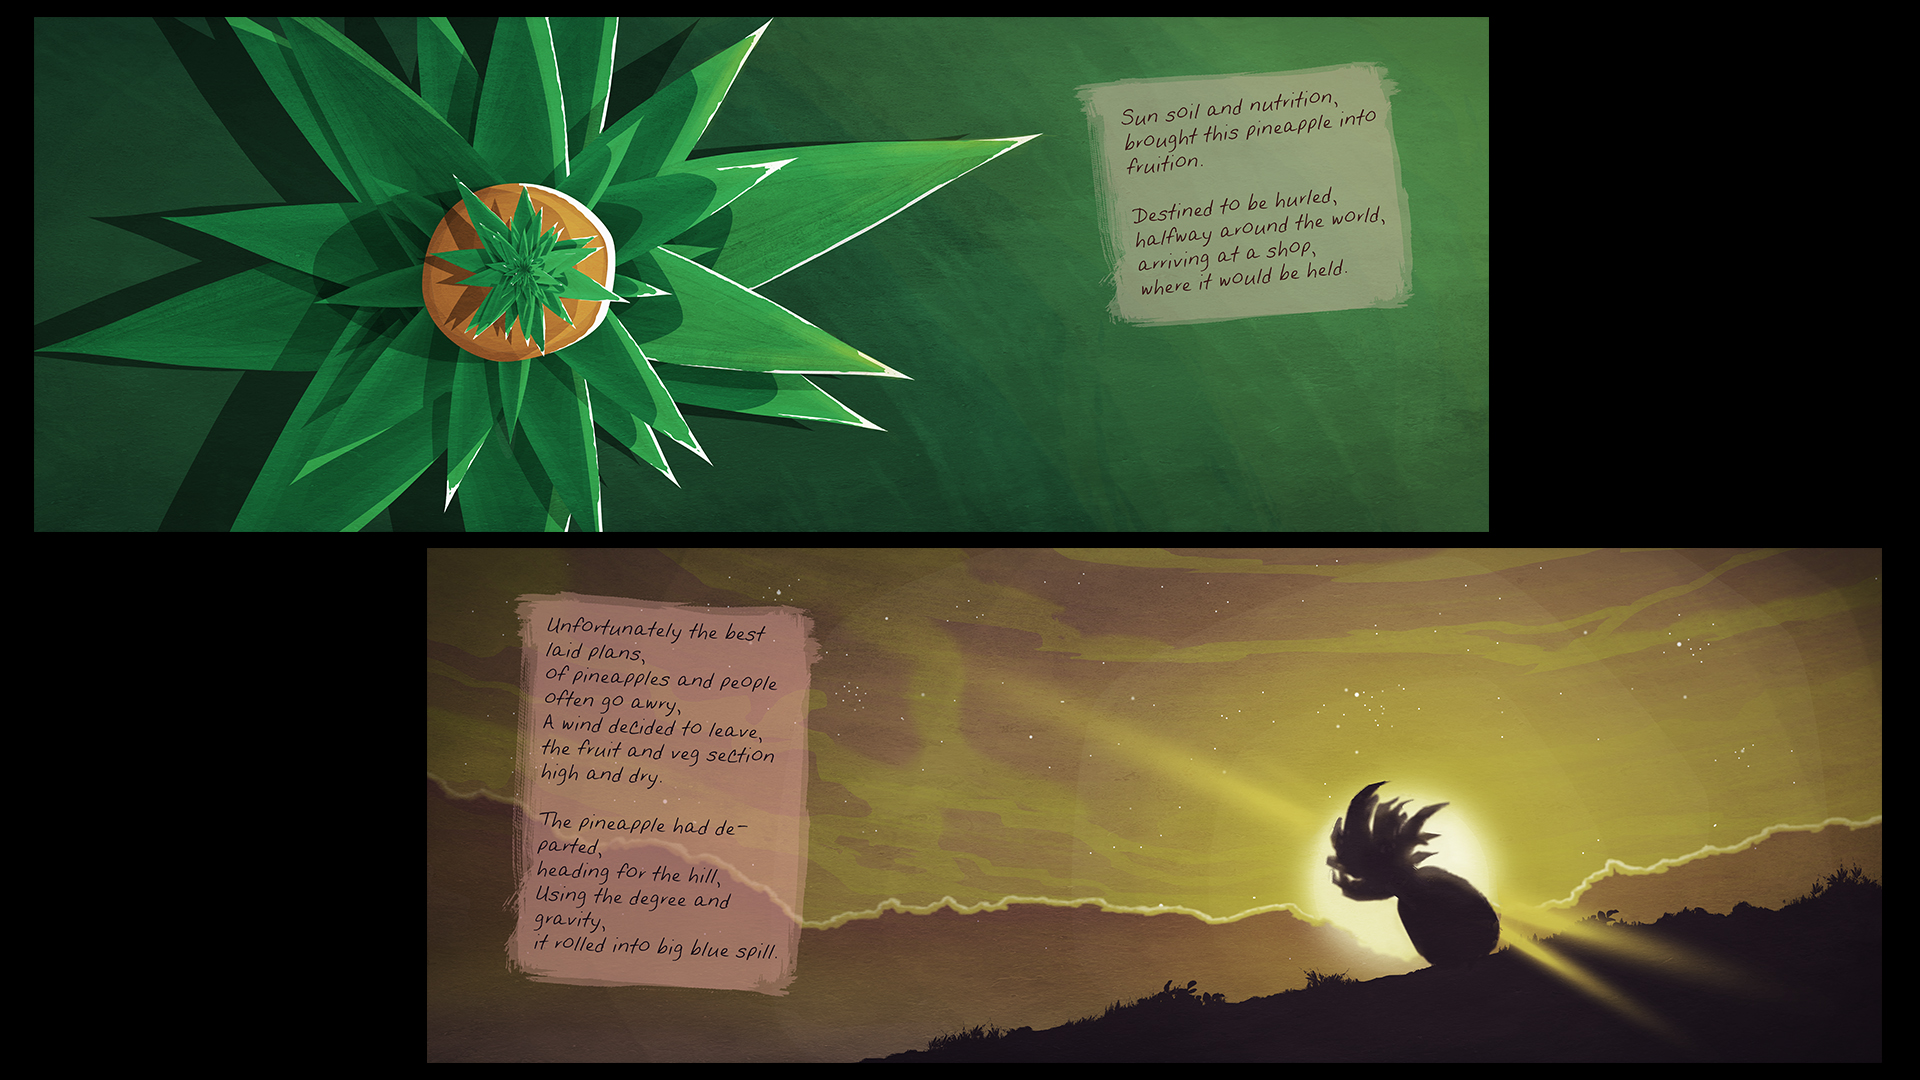 Art Boards 'Pineapple and The Pufferfish